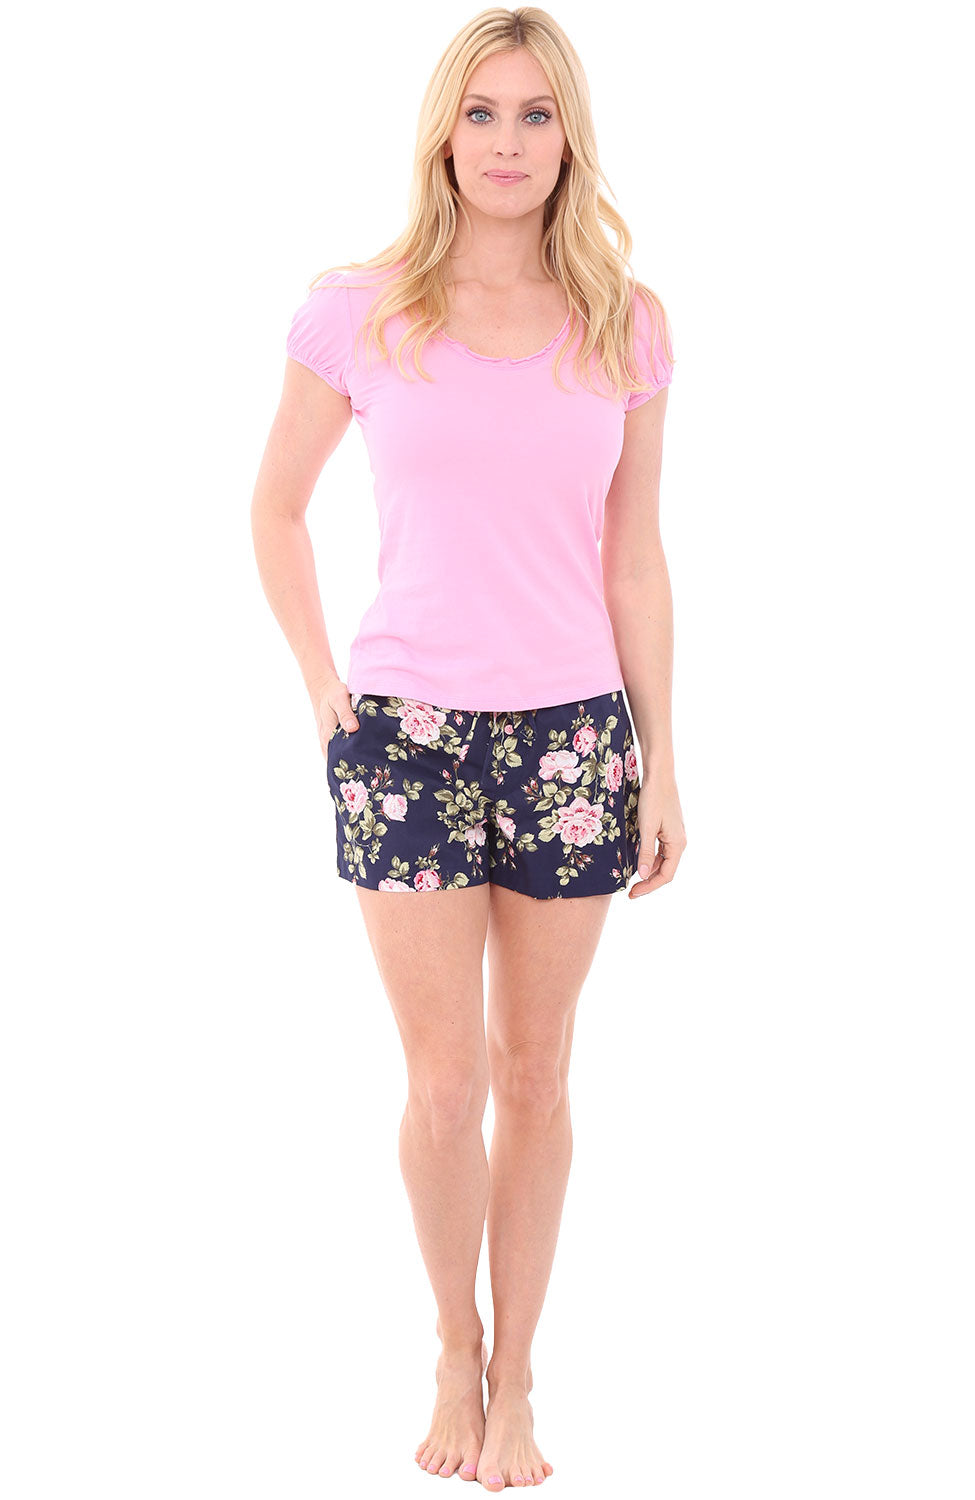 Roses on Navy with Prism Pink Top